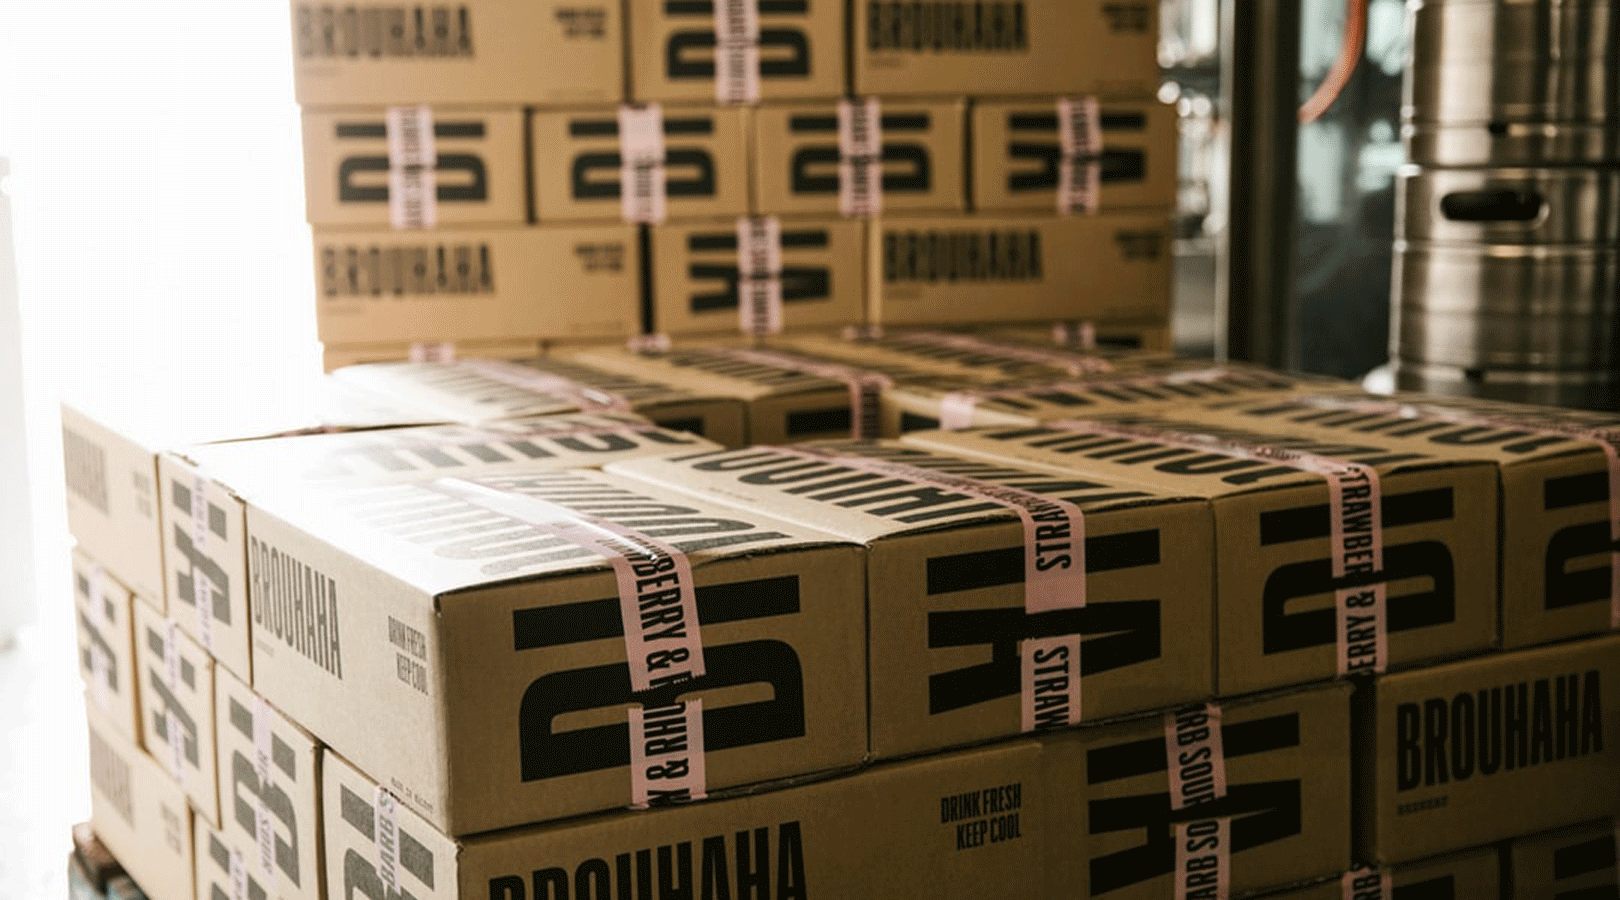 Shipping Tips: Tips for Packing and Shipping Boxes Securely